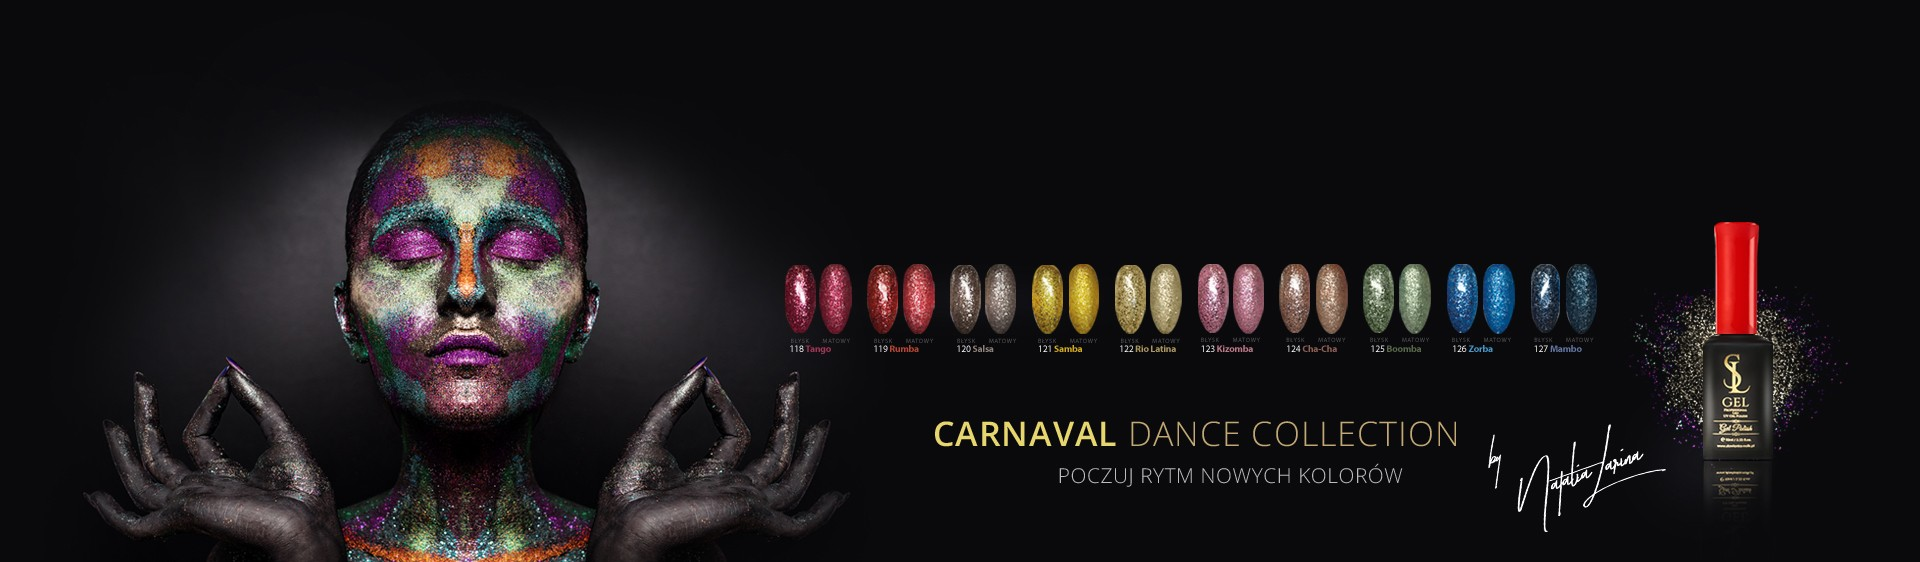 Carnaval Dance Collection